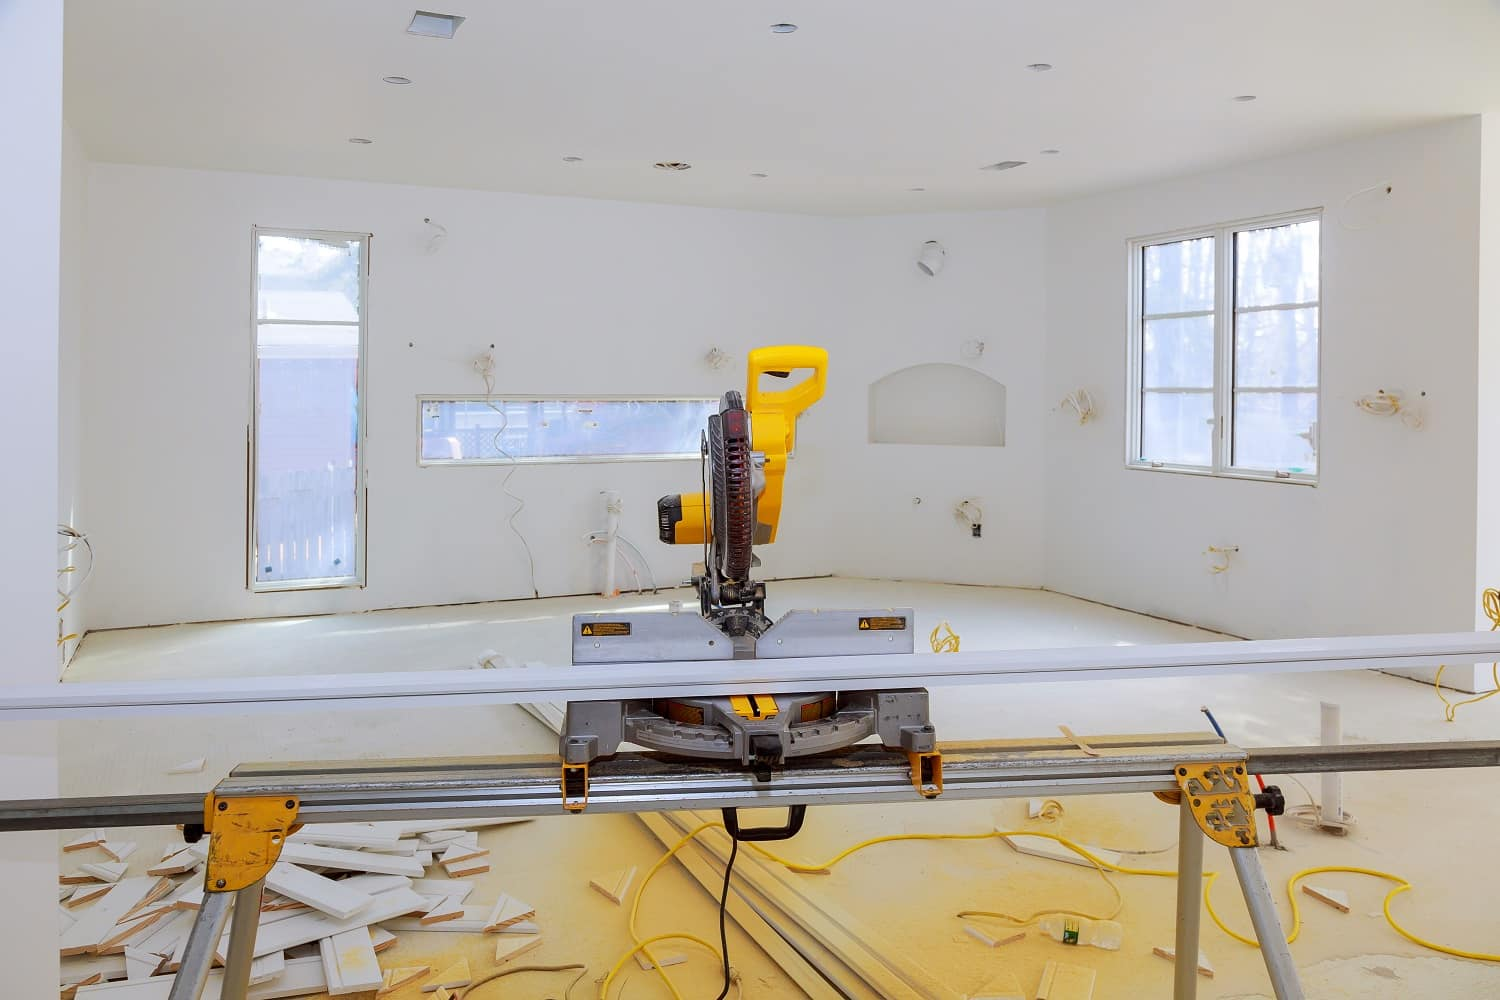 Contractor uses a circular saw to cut trim molding saw on a construction site